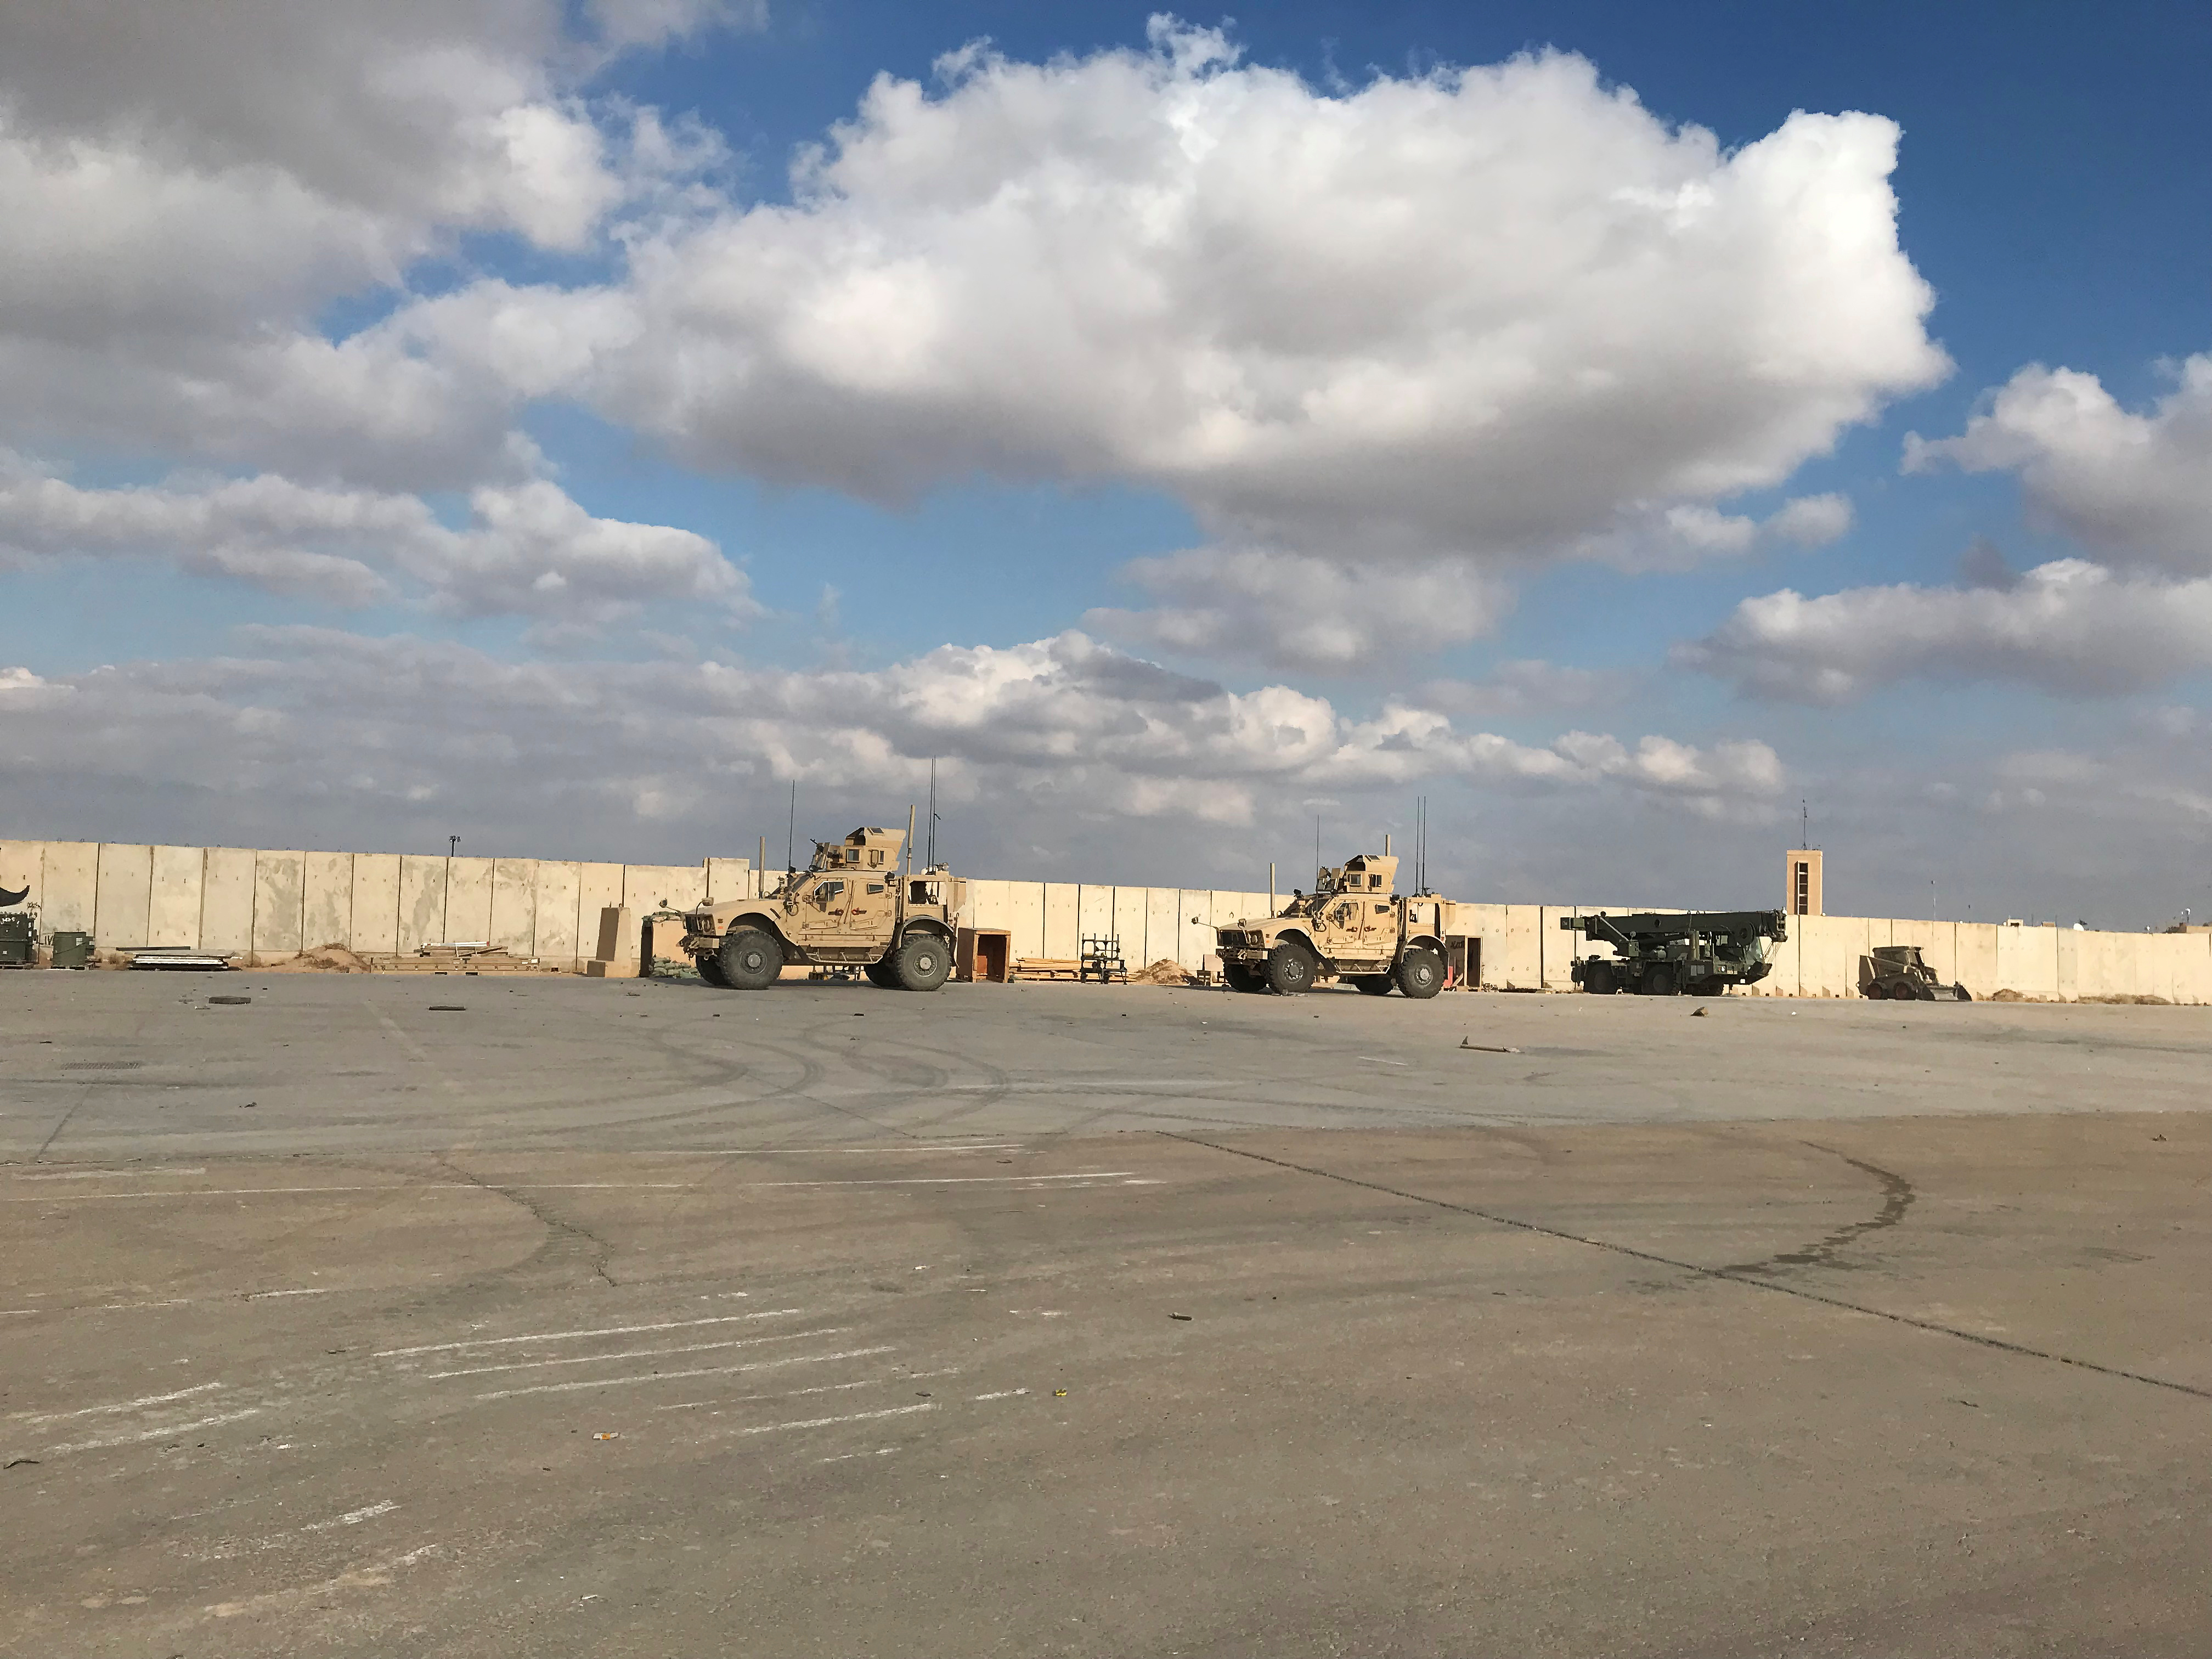 Iraqi Asad base, where U.S. forces work, attacked with rocket - U.S. Coalition